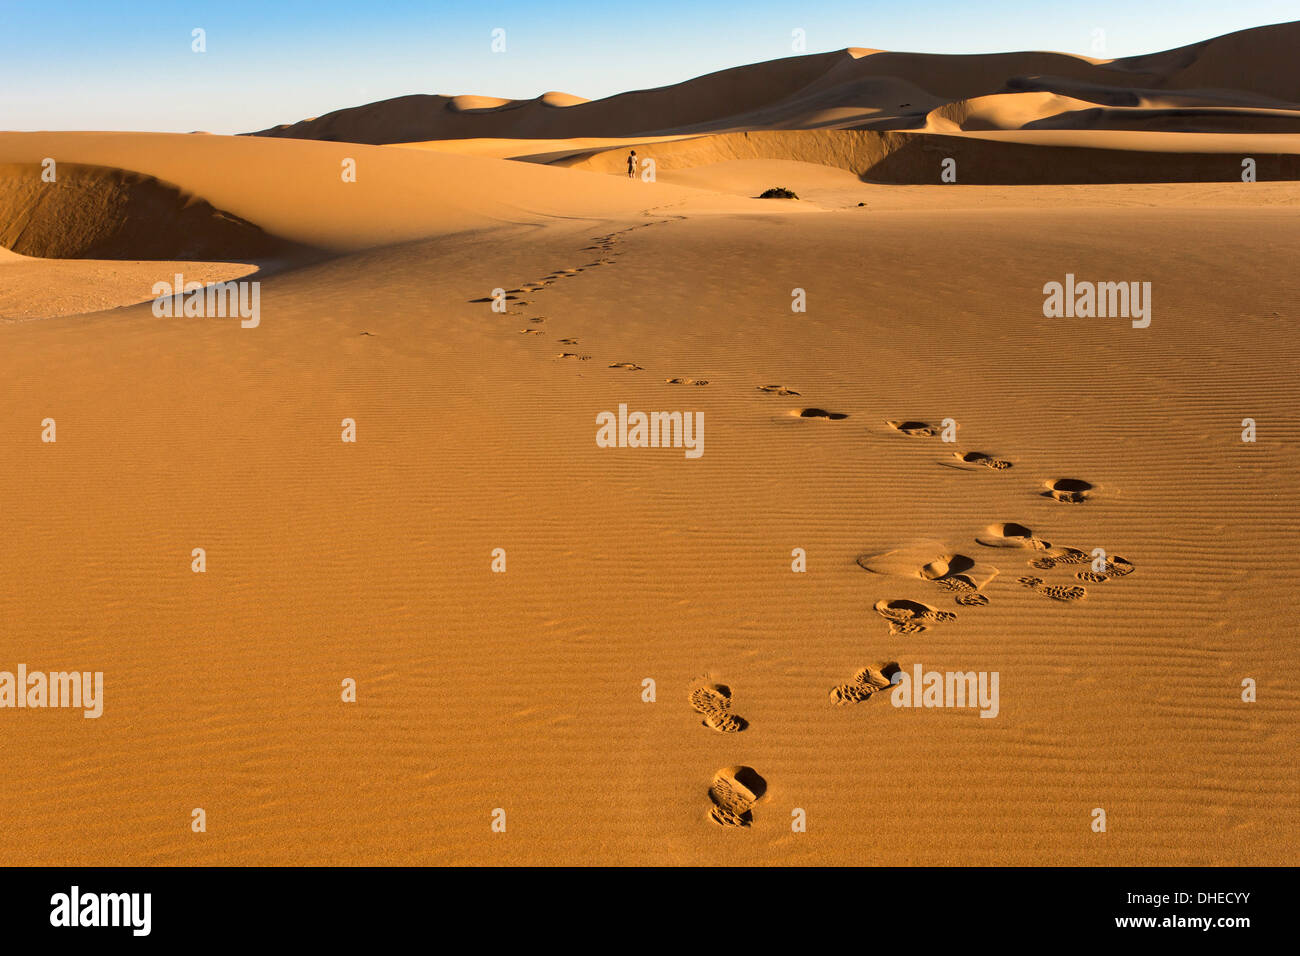 Tourist on sand dunes near Swakopmund, Dorob National Park, Namibia, Africa - Stock Image